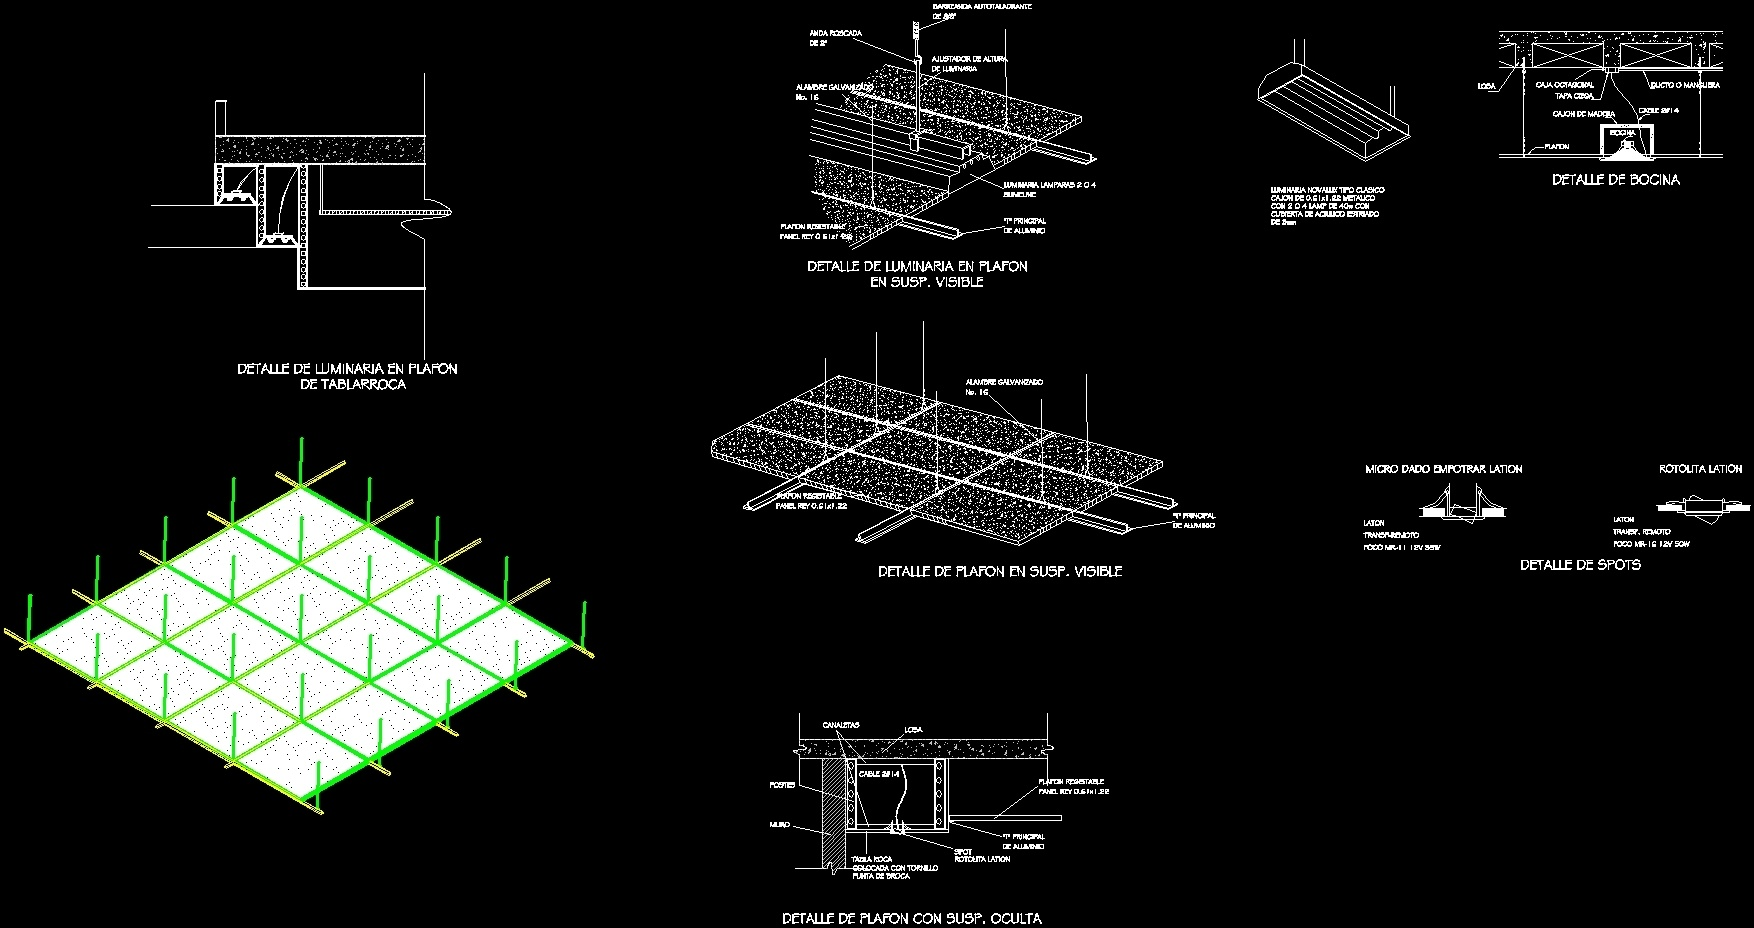 Detaillights in suspended ceilings dwg section for autocad for Detalles dwg